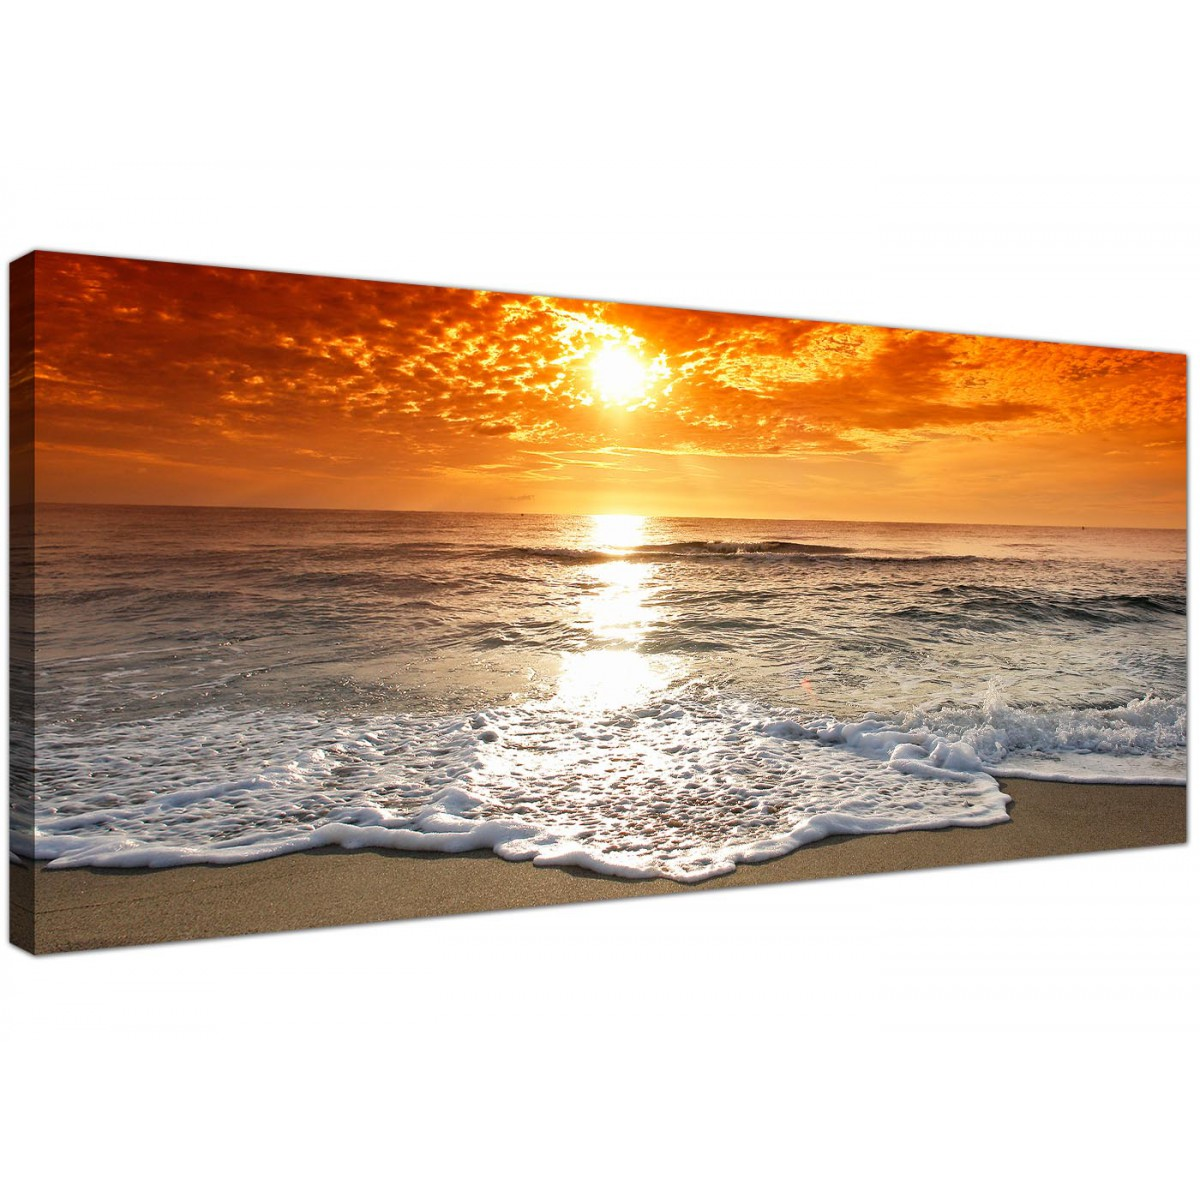 Cheap Canvas Pictures Cheap Canvas Pictures Of A Beach Sunset For Your Bedroom